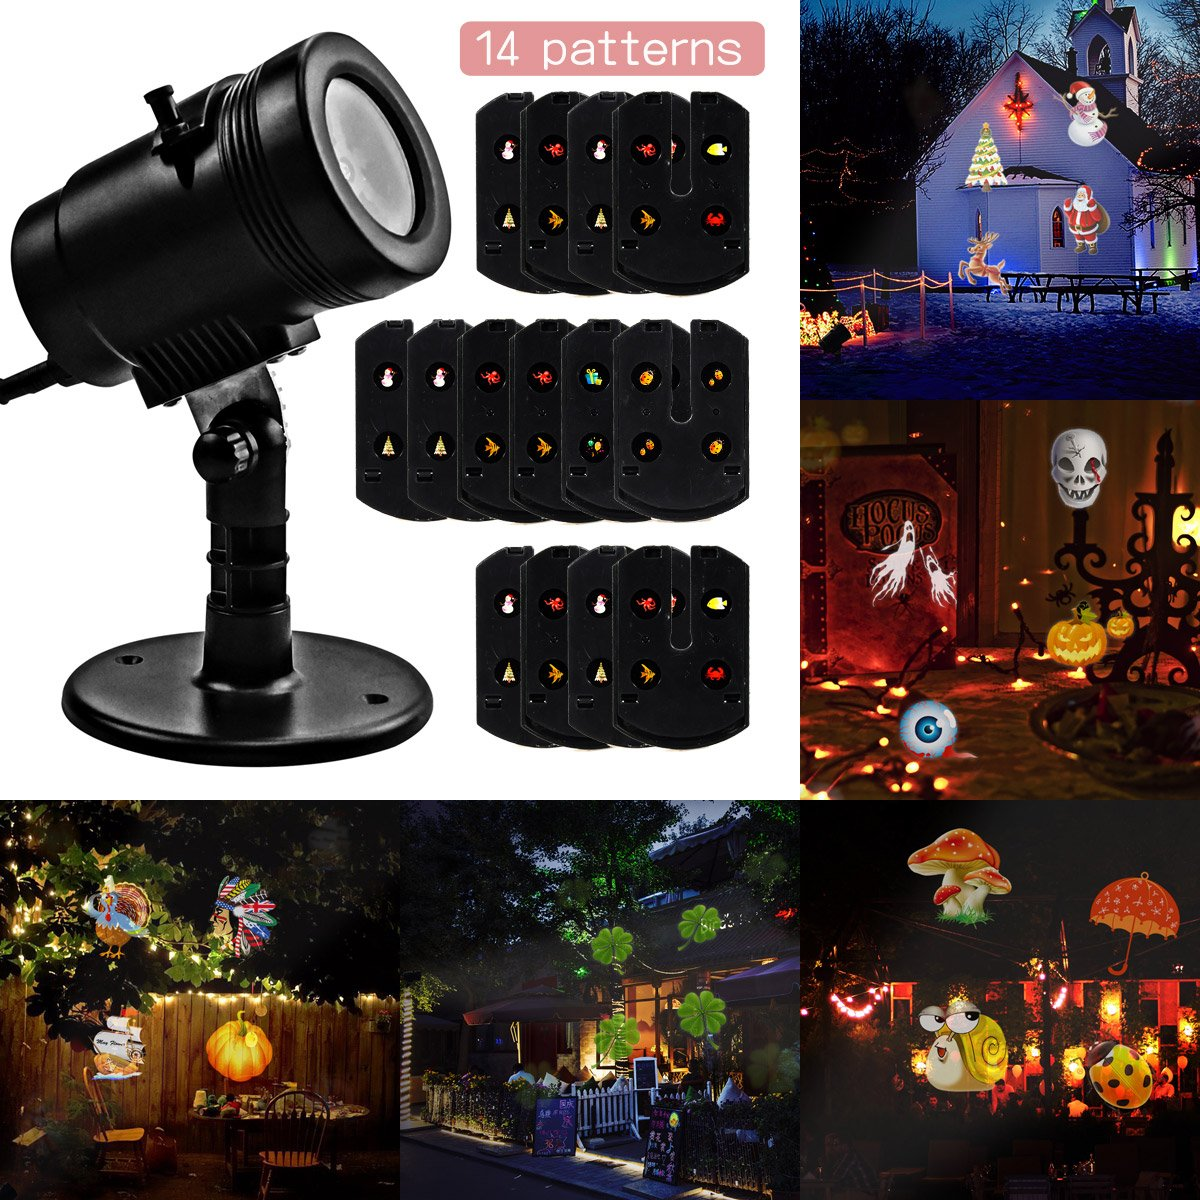 lychee Summer Party Decorations Projector lights outdoor Moving Rotating Projector LED Spotlights Waterproof projection Led lights w/14pcs Switchable pattern lens for Summer Graduation Decoration.